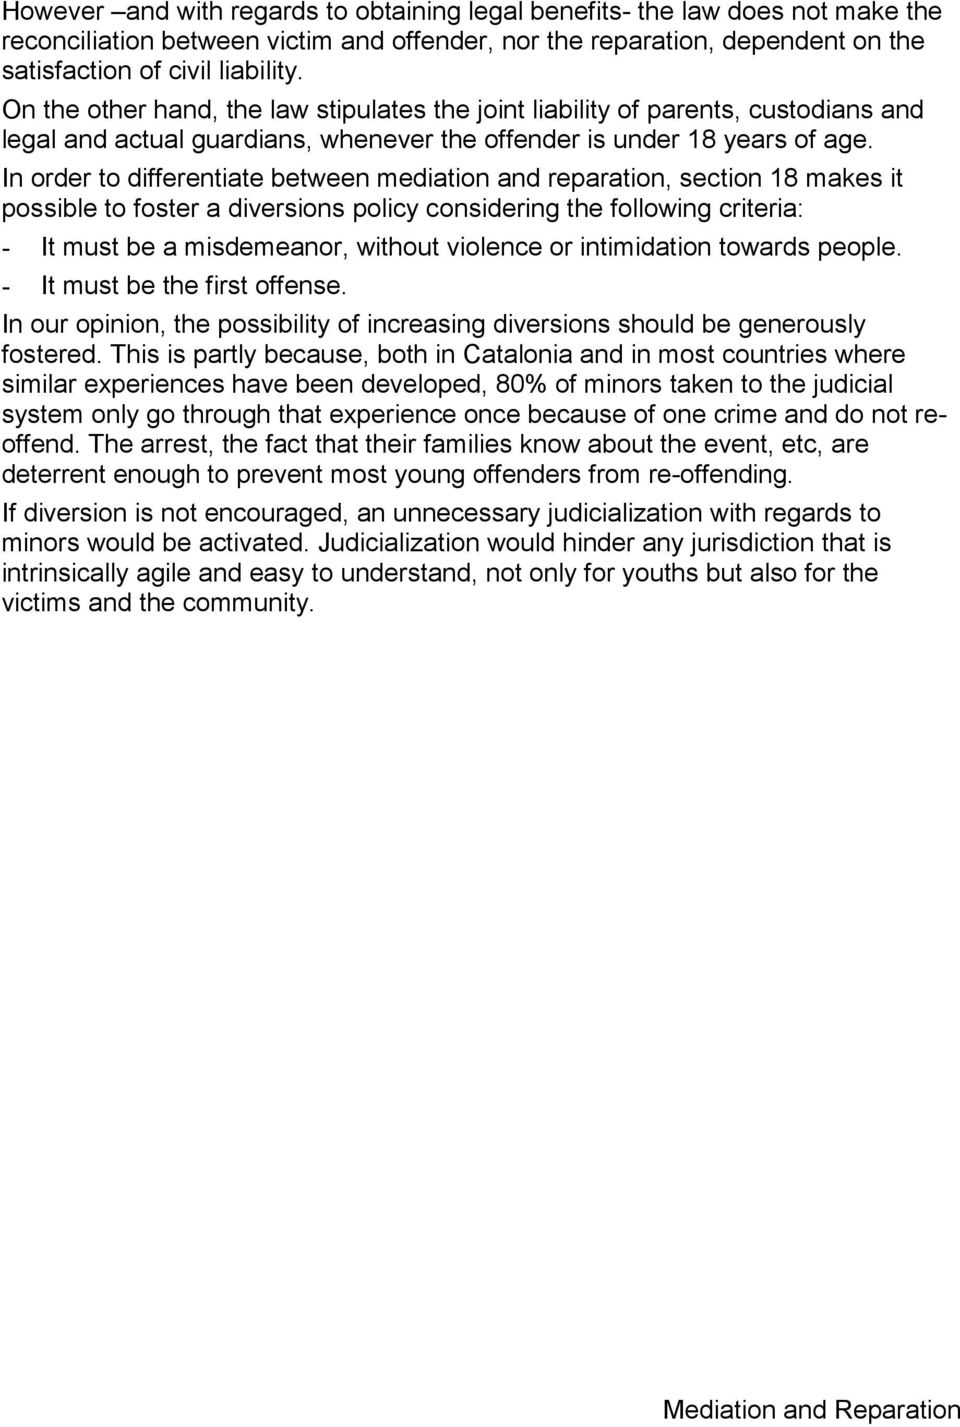 In order to differentiate between mediation and reparation, section 18 makes it possible to foster a diversions policy considering the following criteria: - It must be a misdemeanor, without violence